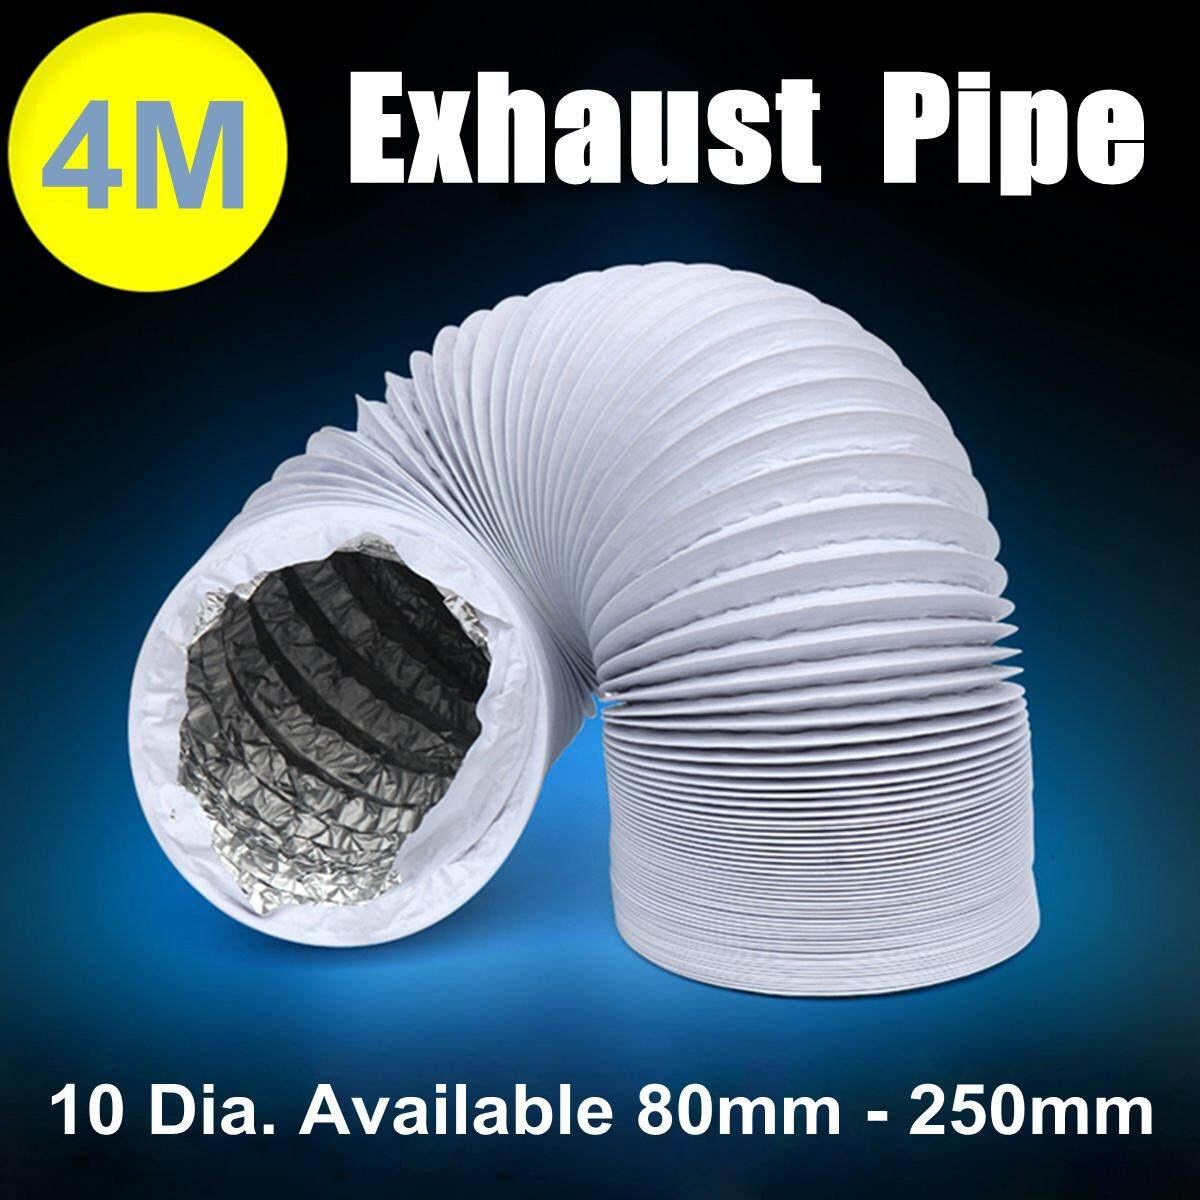 4m Flexible Air Conditioner Spare Parts Exhaust Pipe Vent Hose Outlet  125mm By Freebang.